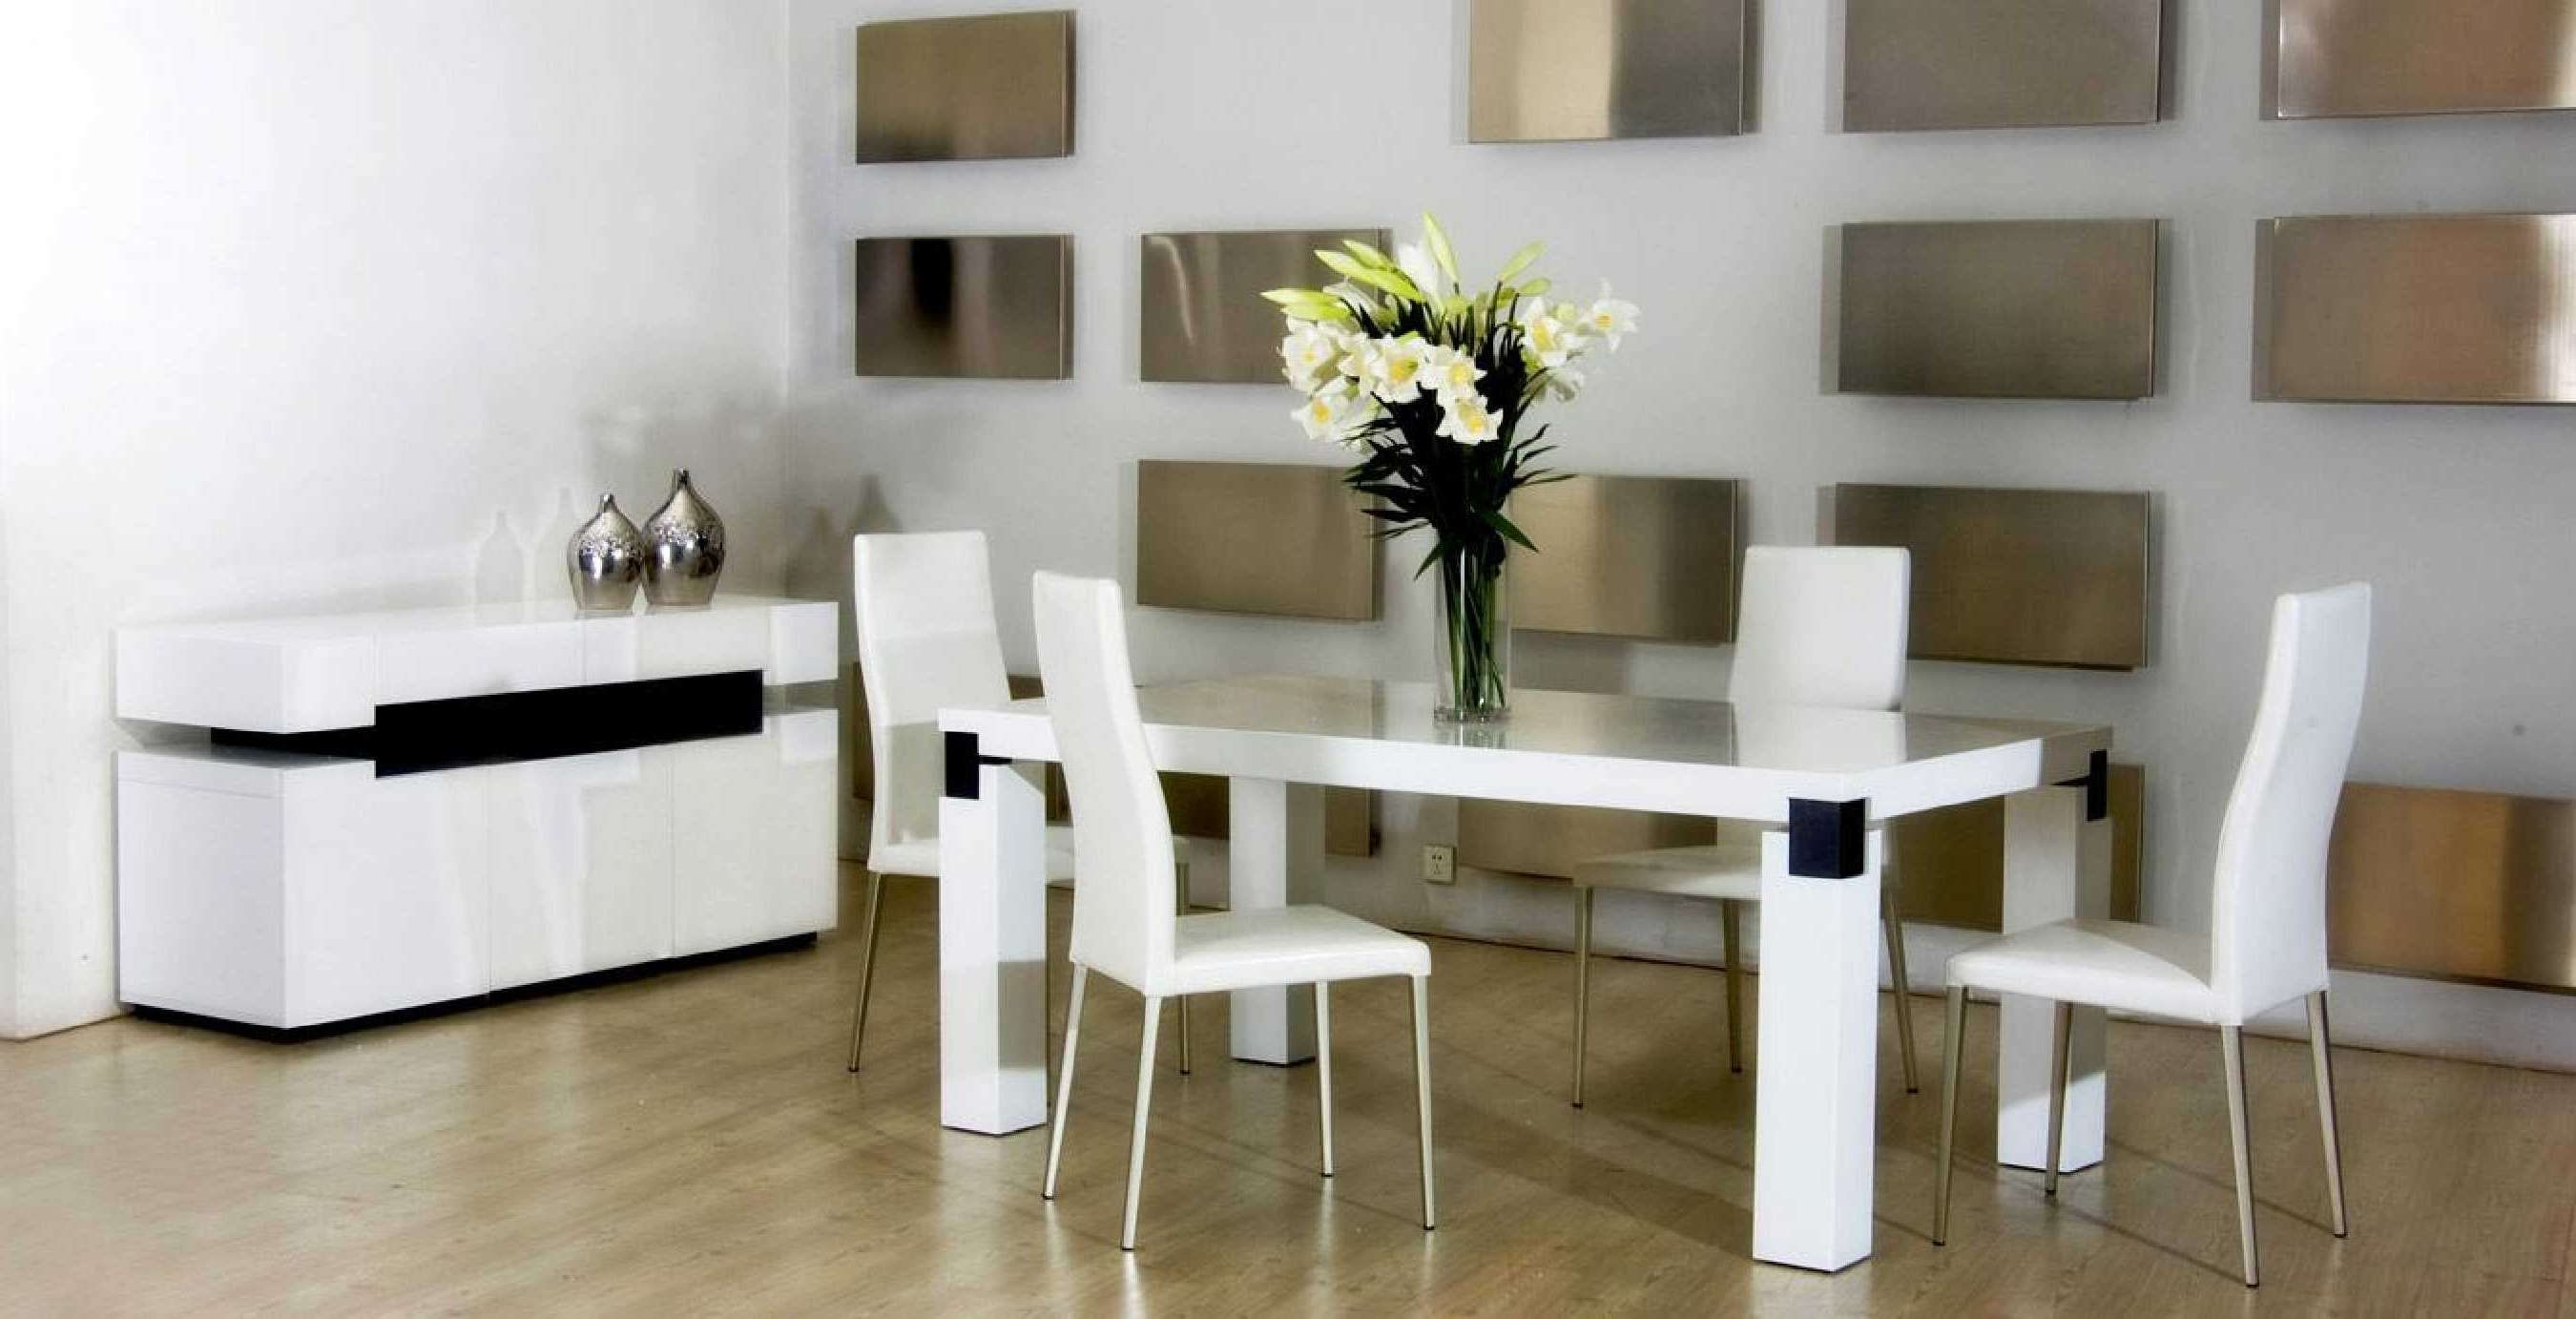 Alliancemv – Design Chairs And Dining Room Table For Dining Room Sets With Sideboards (View 1 of 20)